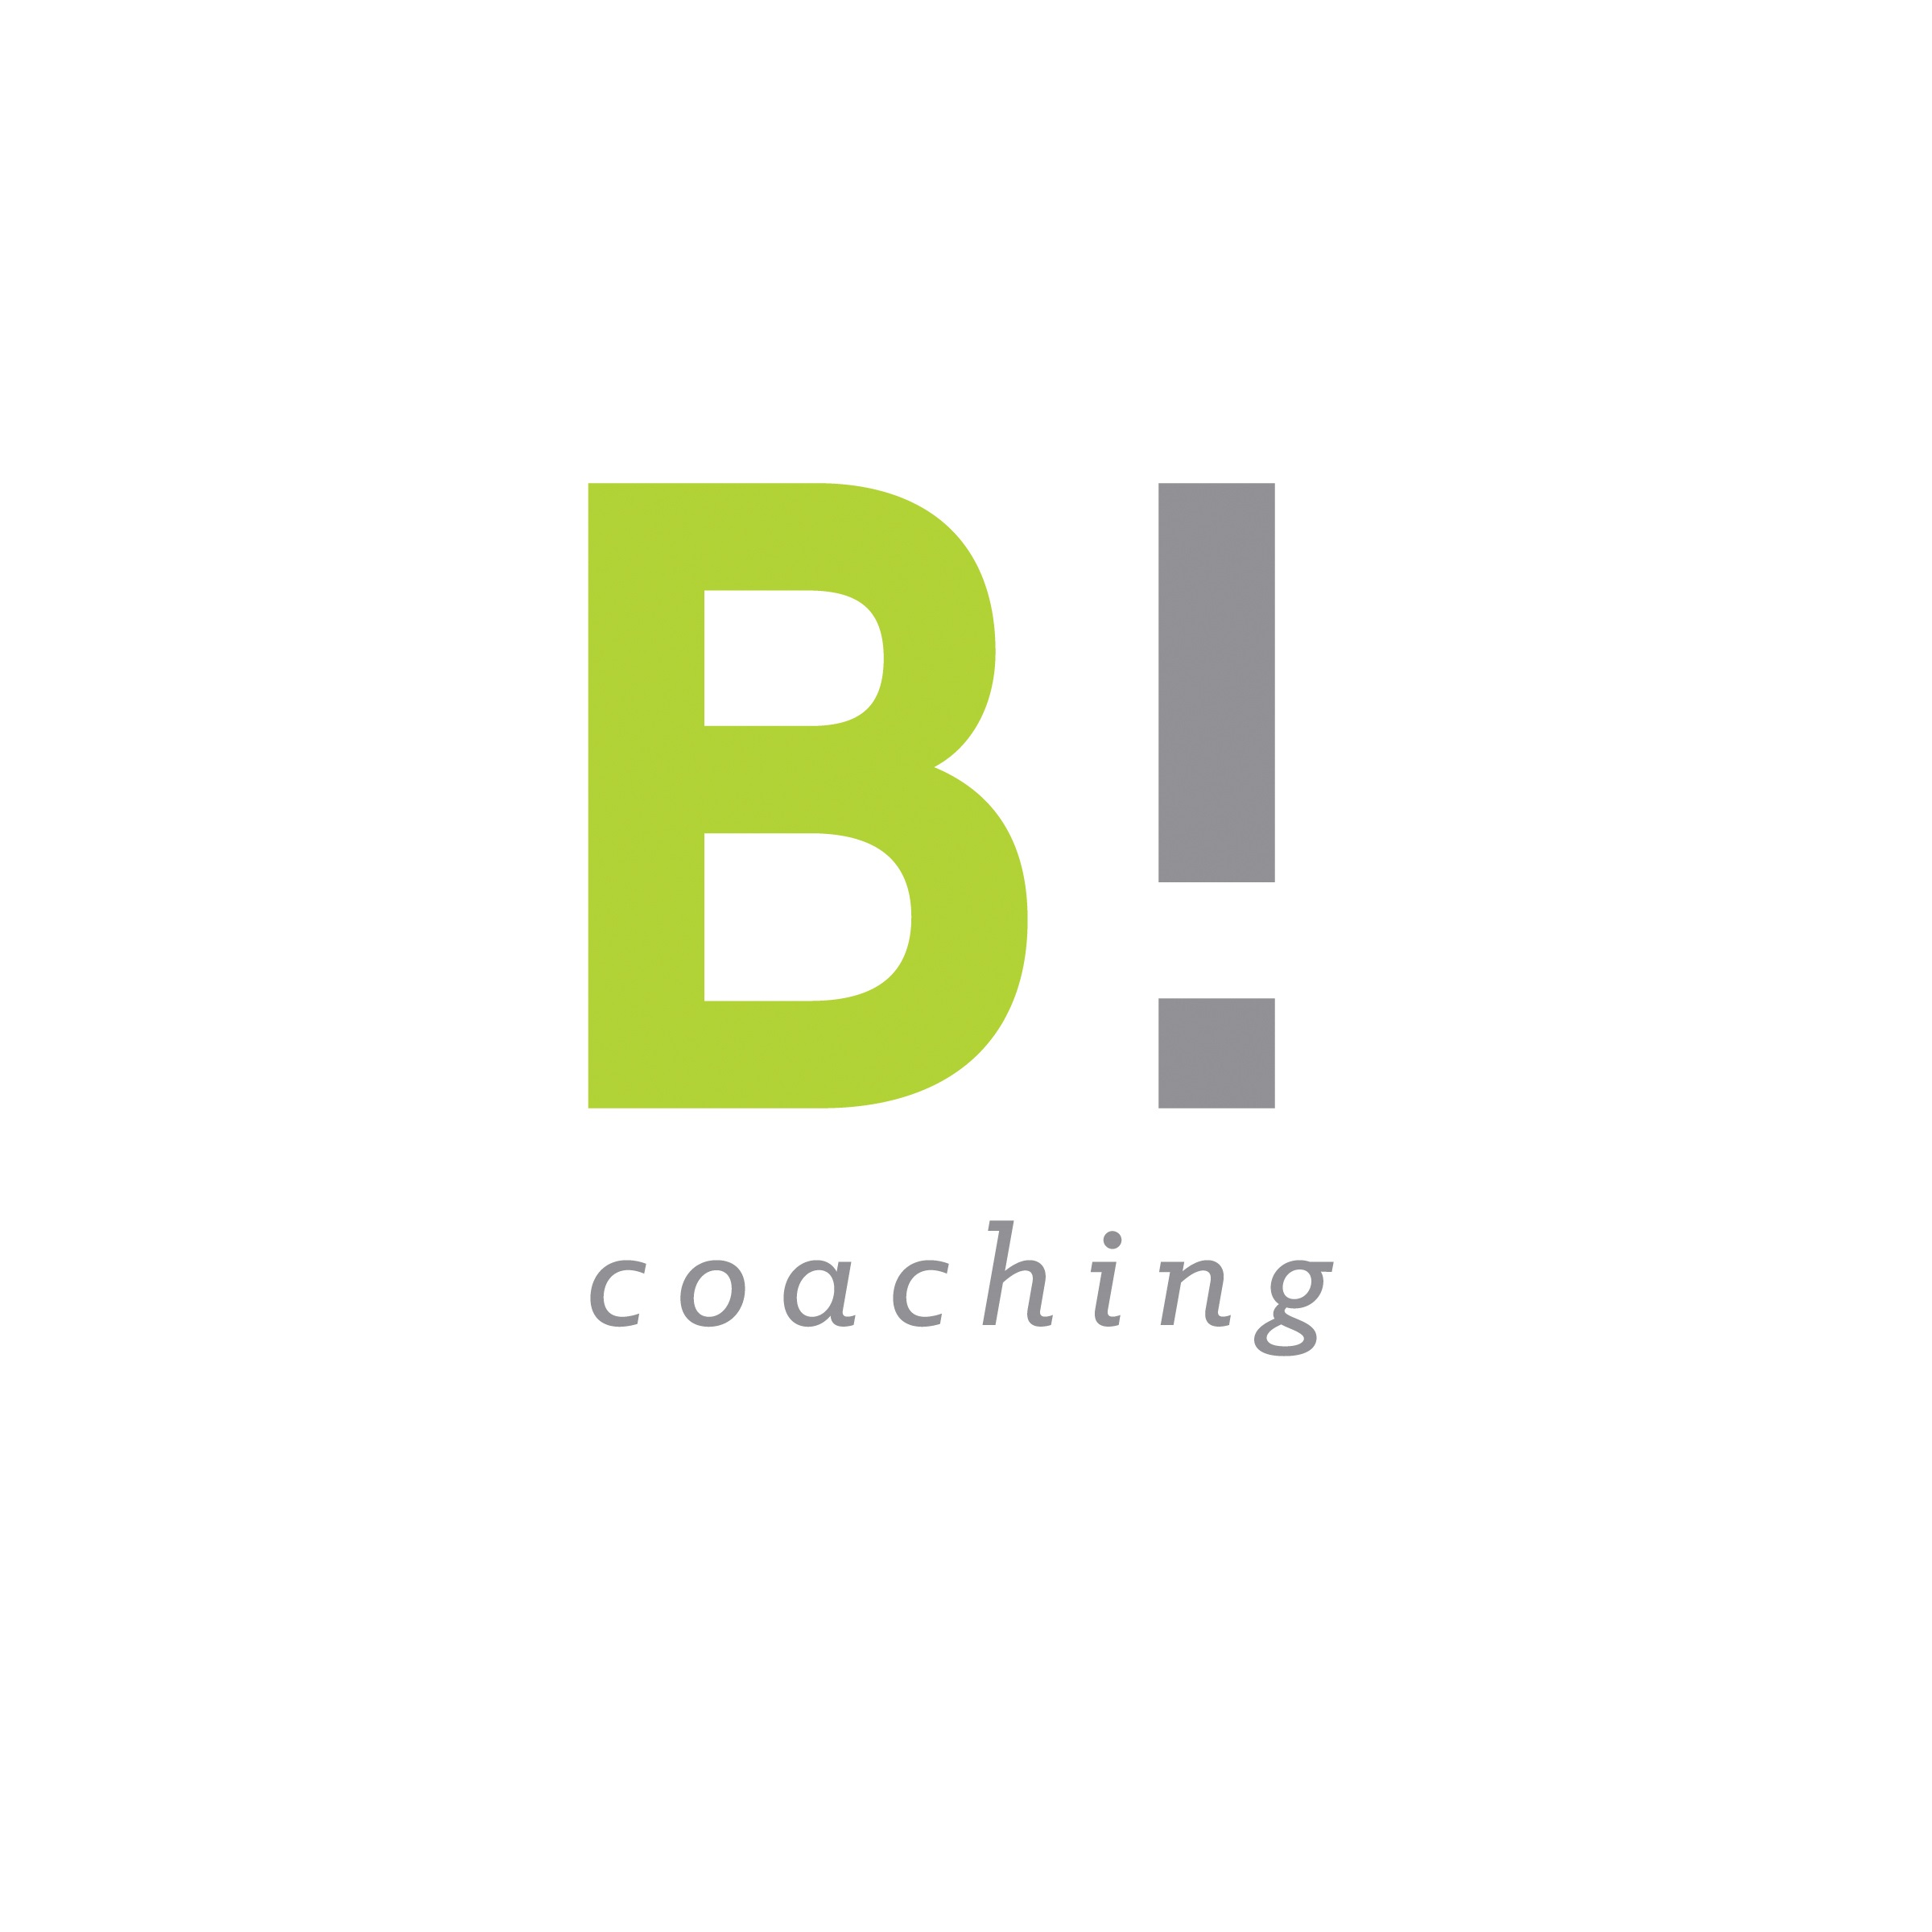 Consults with a coach are also available by request!